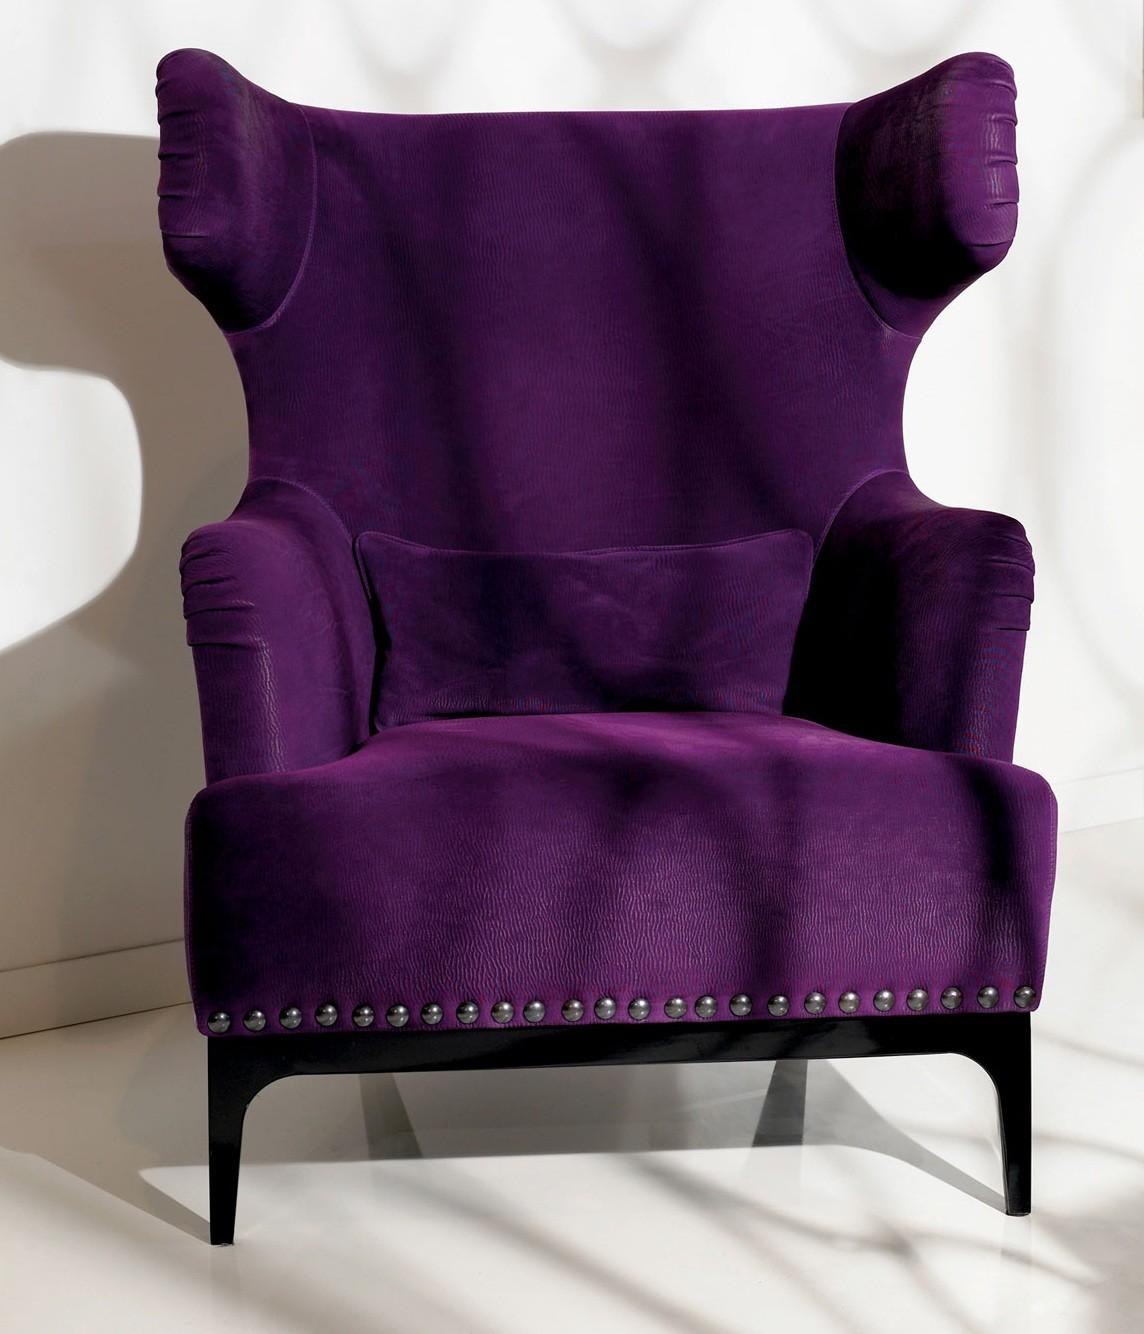 Purple Chairs Bedroom Home Design Ideas Inspiration